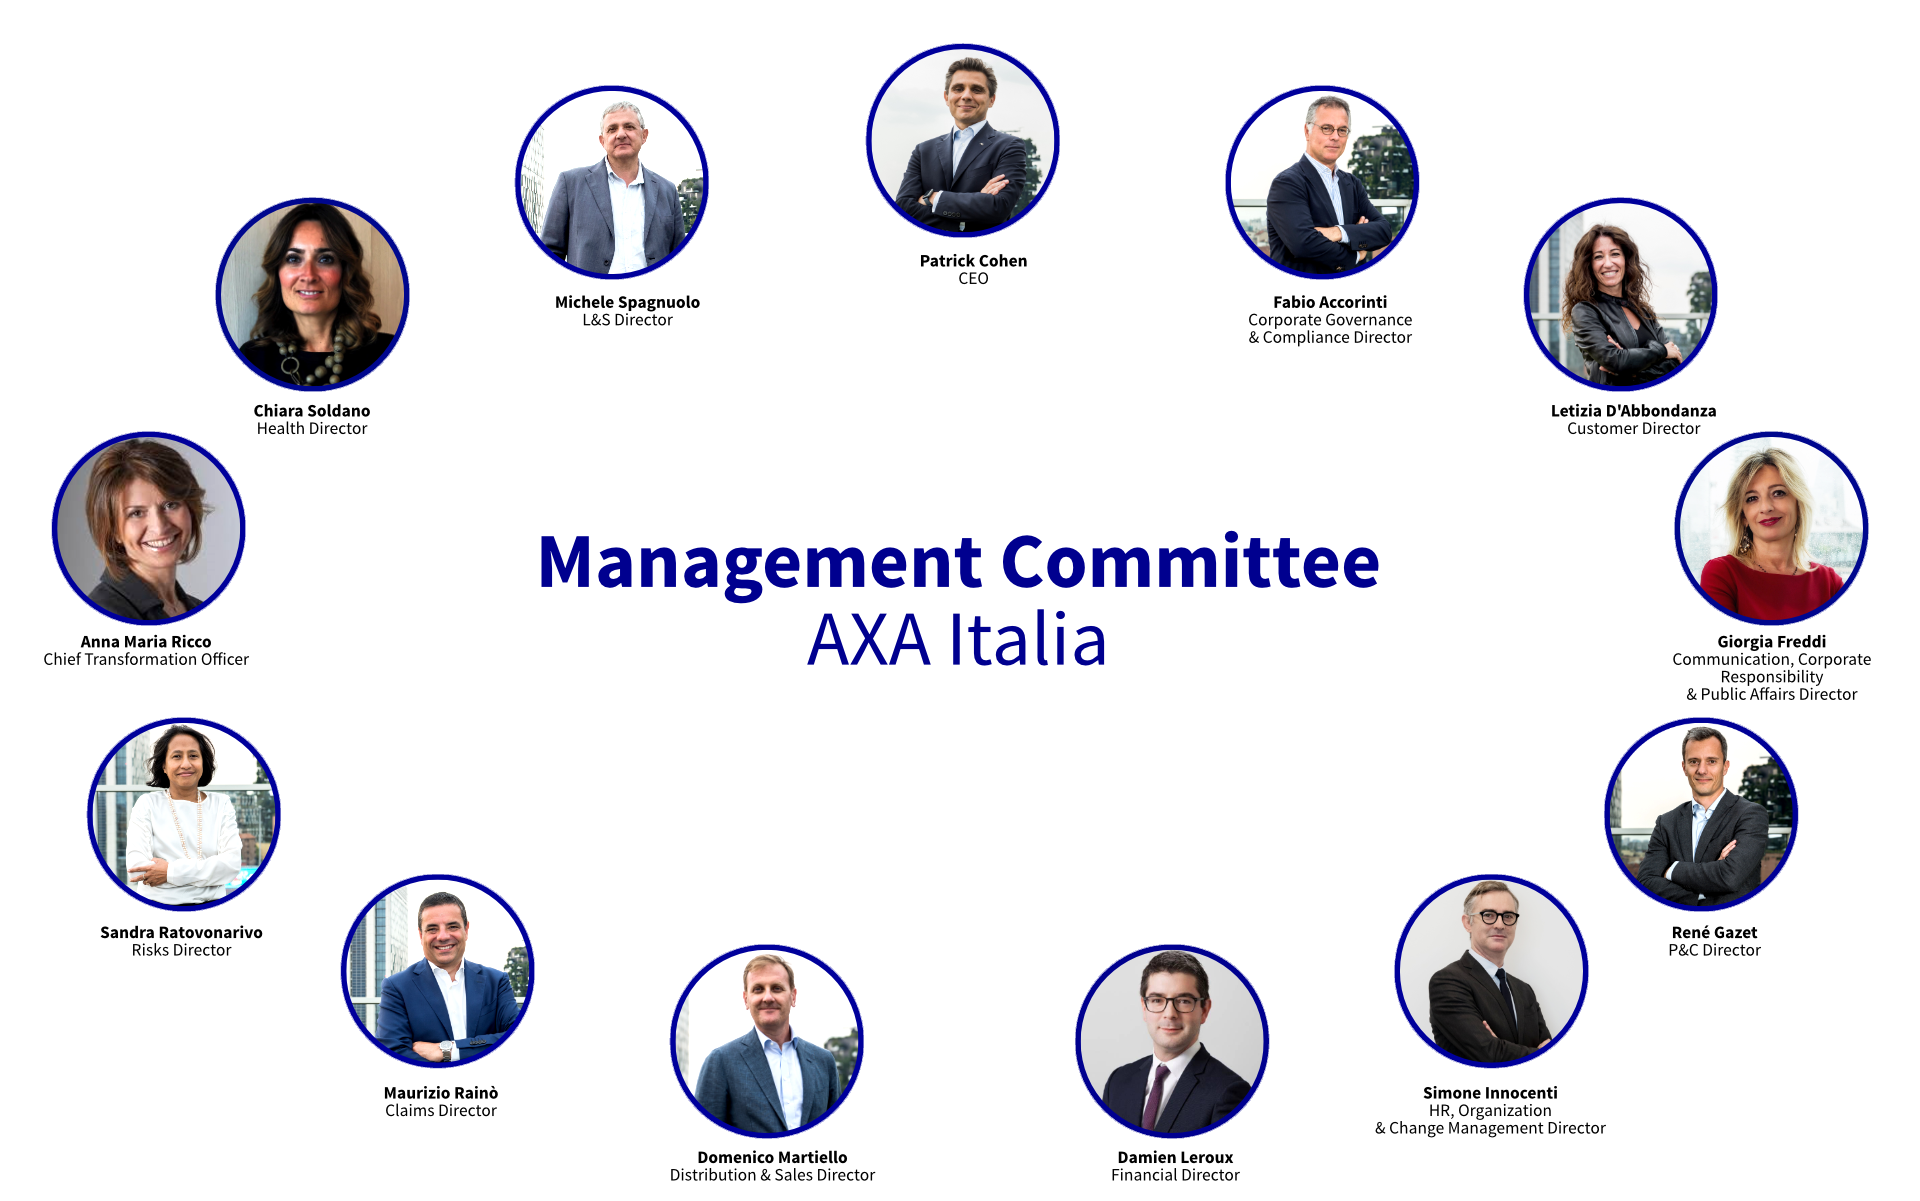 Management Committee AXA Italia